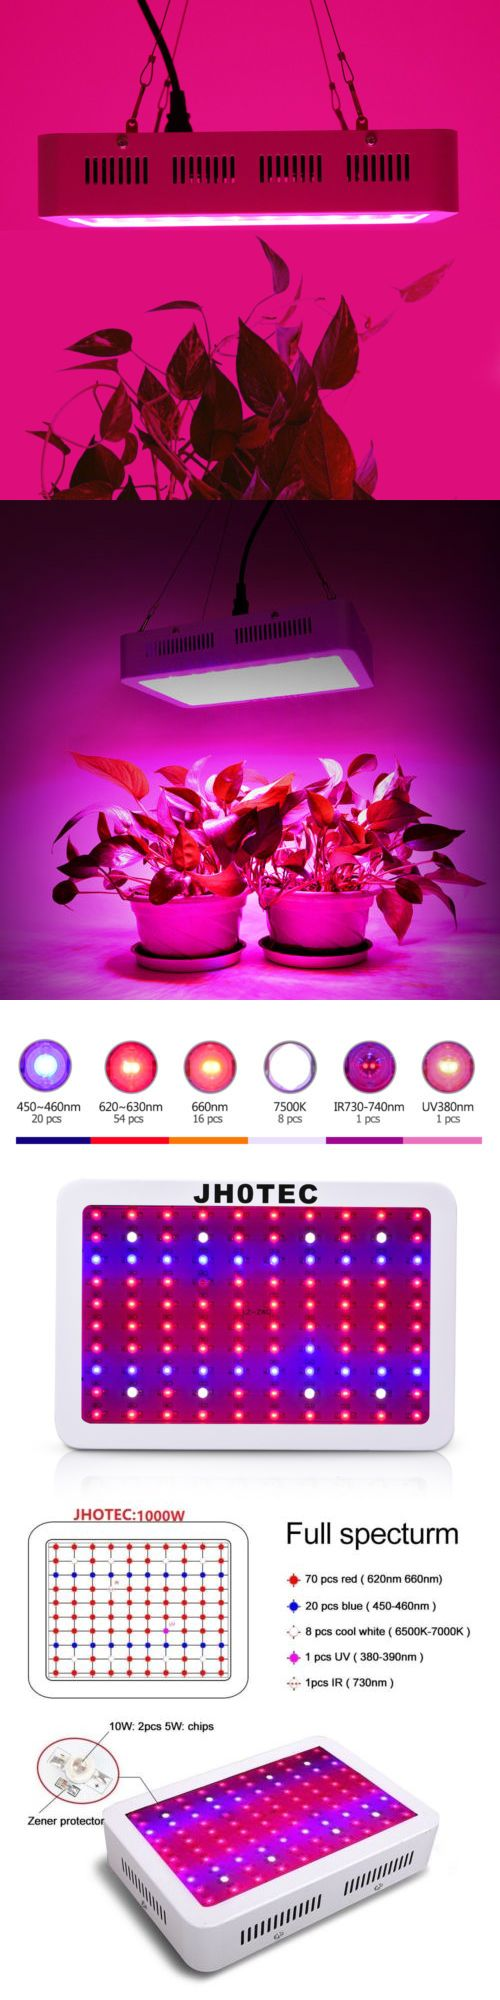 Grow Light Bulbs 178988 1000w Led Grow Light Lamp Full Spectrum Hydroponic Greenhouse Plant Bloom Jhote Buy It Led Grow Lights Grow Lights Grow Light Bulbs